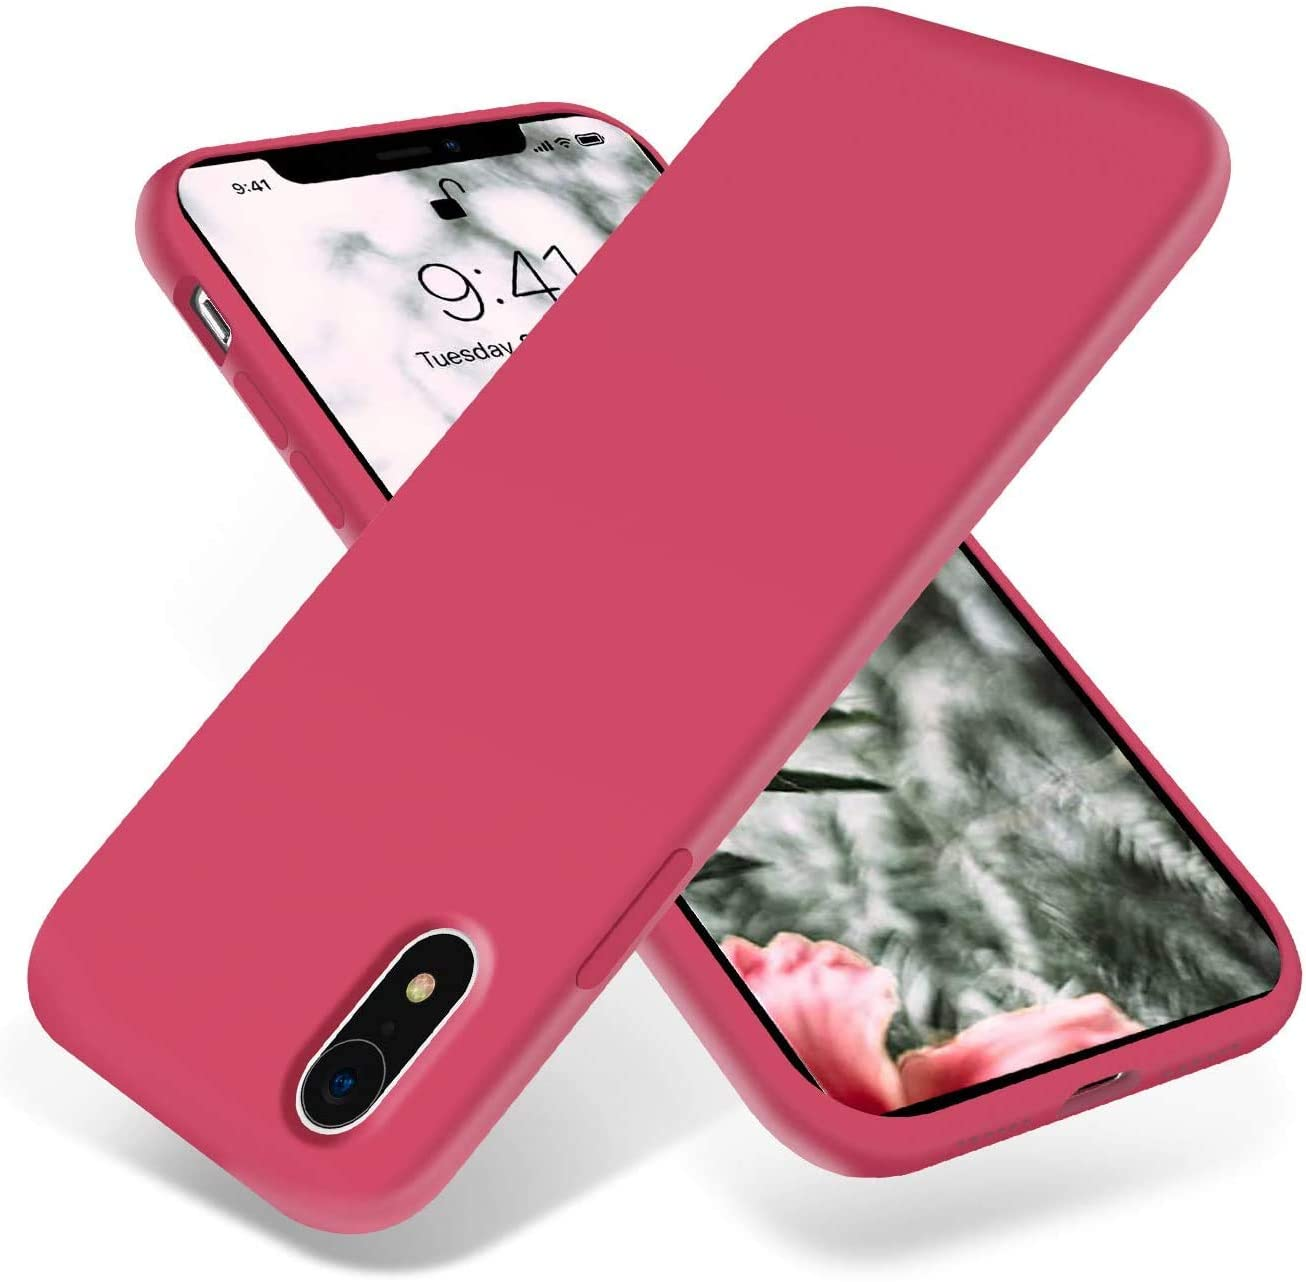 iPhone XR Case, NYGSM Soft Silicone Rubber Bumper Phone Case with Anti-Scratch Microfiber Lining Hard Shell Shockproof Full-Body Protective Case Cover for iPhone XR 6.1